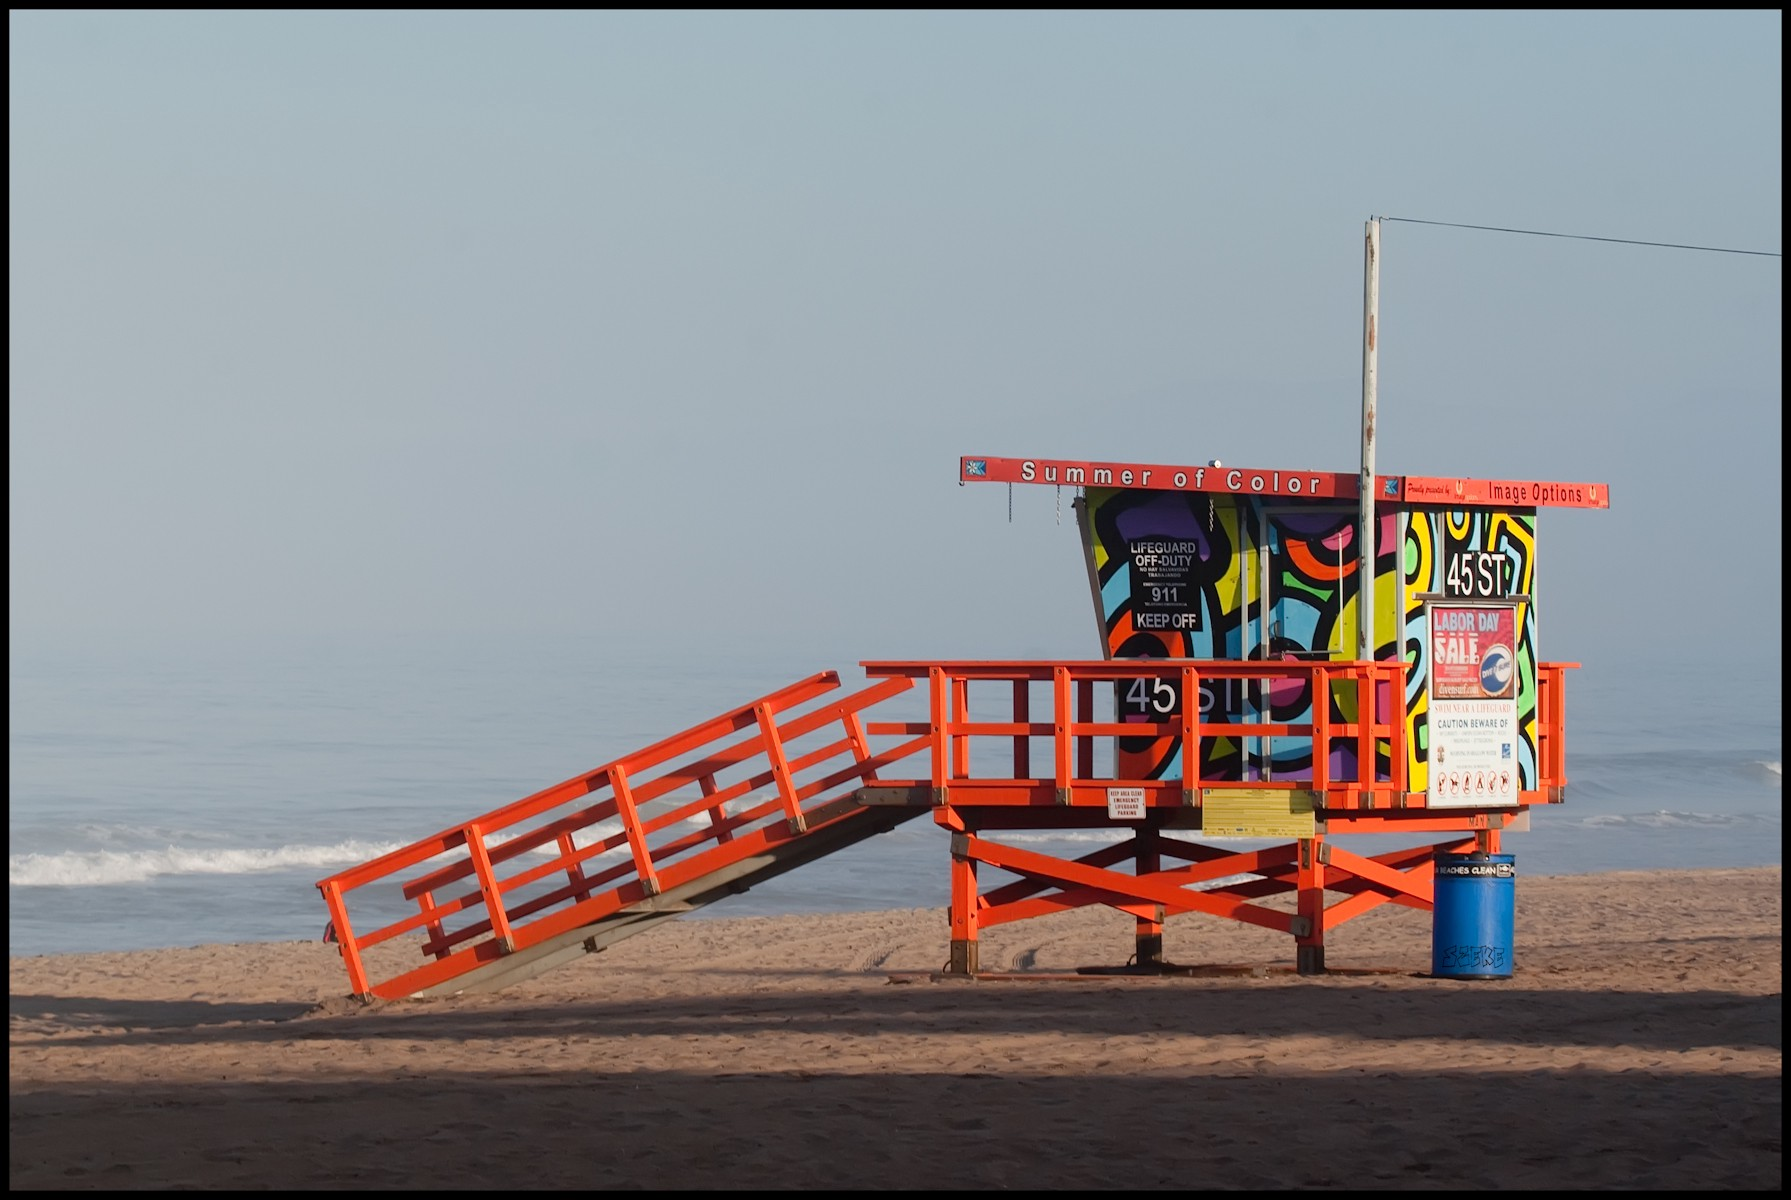 Photo of colourfully-painted lifeguard tower on calm, unpeopled beach.